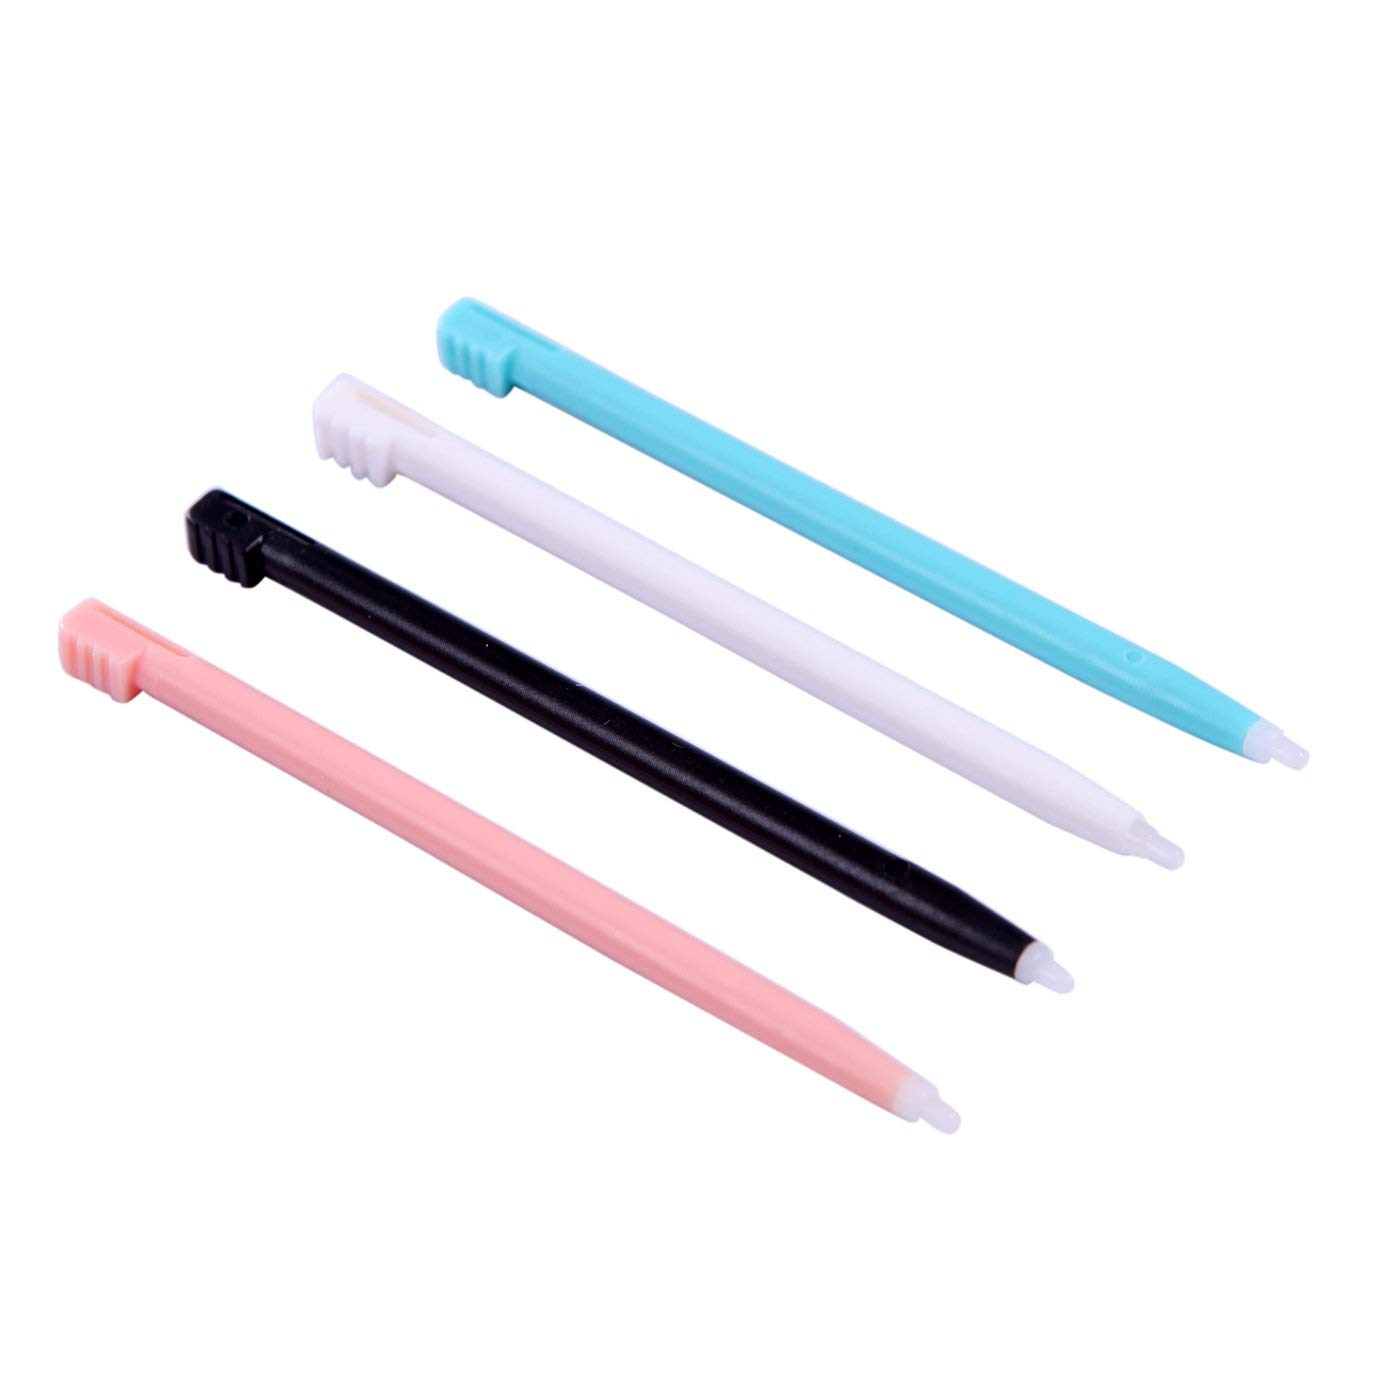 4 Pack of Stylus Pens Compatible with Nintendo DSi and DS Lite Touch Screen (NDSi and DSL) - 4 Pack in 4 Colours